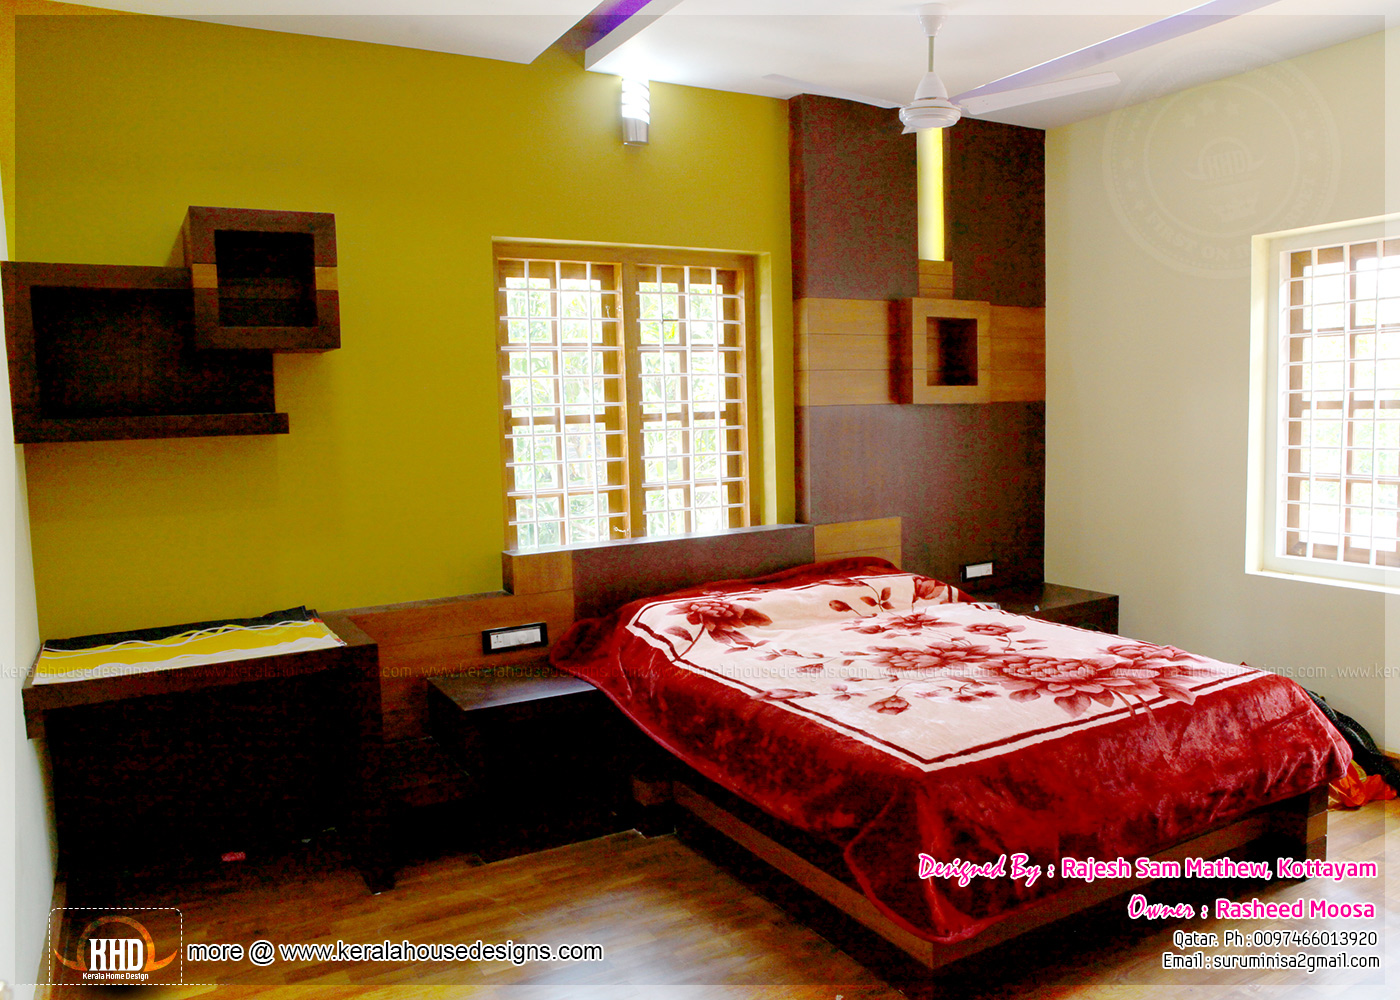 Kerala interior design with photos kerala home design for New style bedroom design